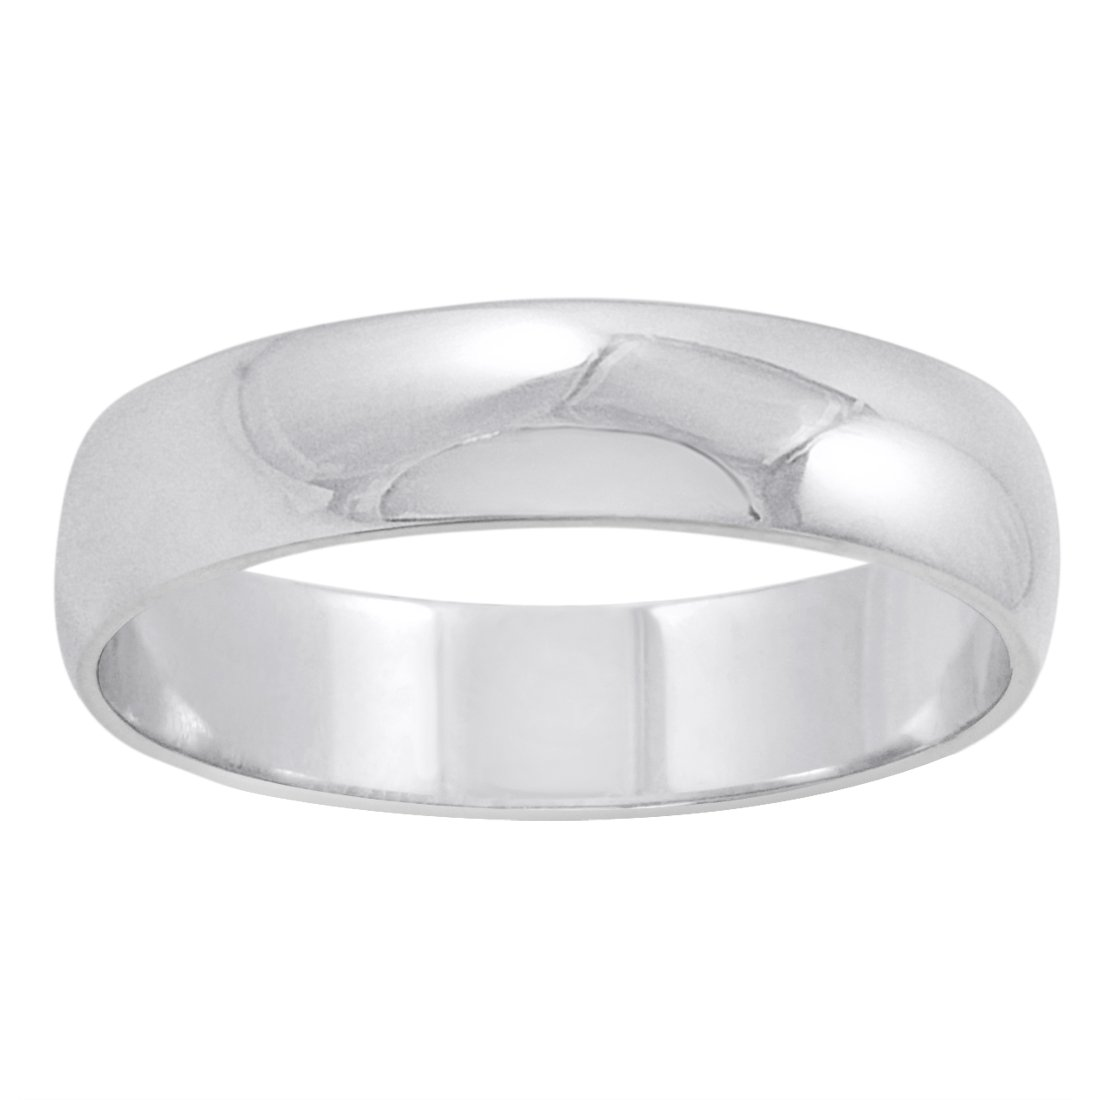 Men's 14K White Gold 5mm Traditional Plain Wedding Band (Available Ring Sizes 8-12 1/2) Size 8 by Oxford Ivy (Image #2)